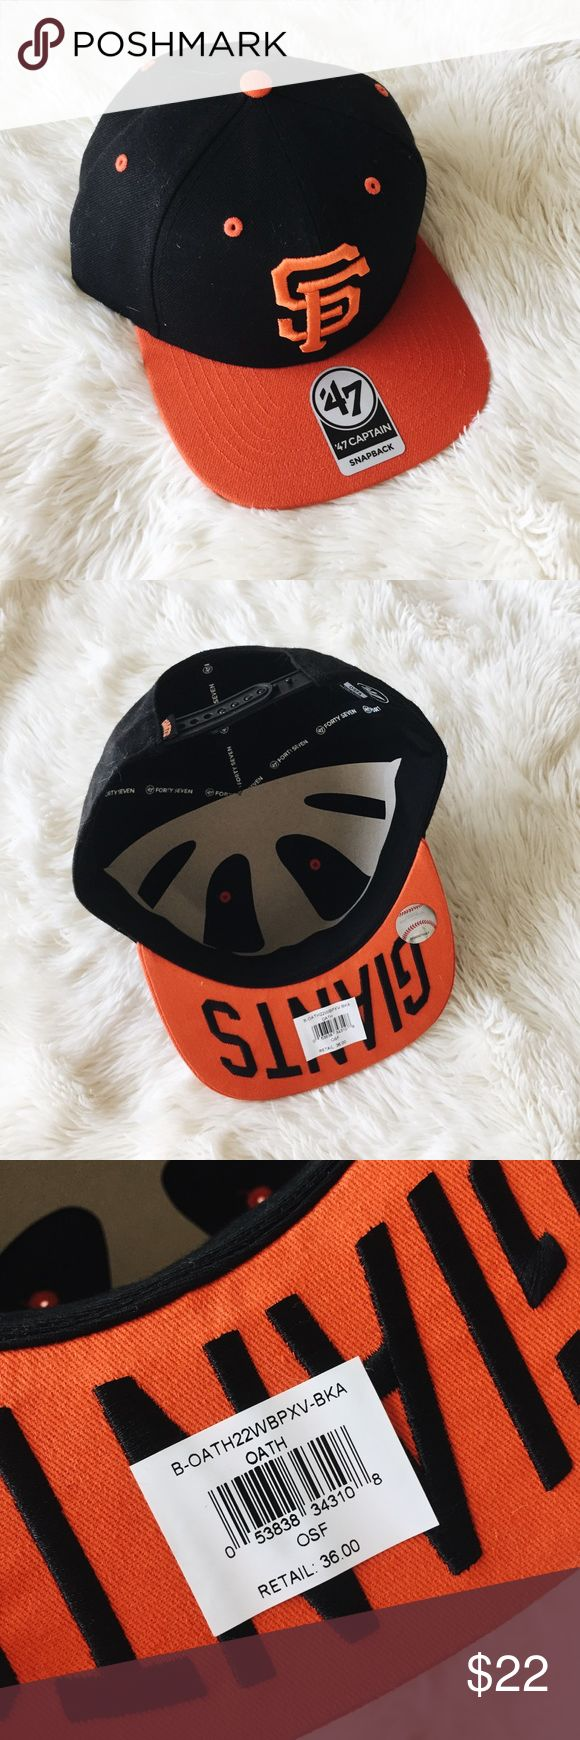 SF Giants Snapback Brand new San Francisco Giants snapback cap with adjustable strap. NWT, authentic, and purchased at the Giants stadium store - never worn and in perfect condition. Accessories Hats